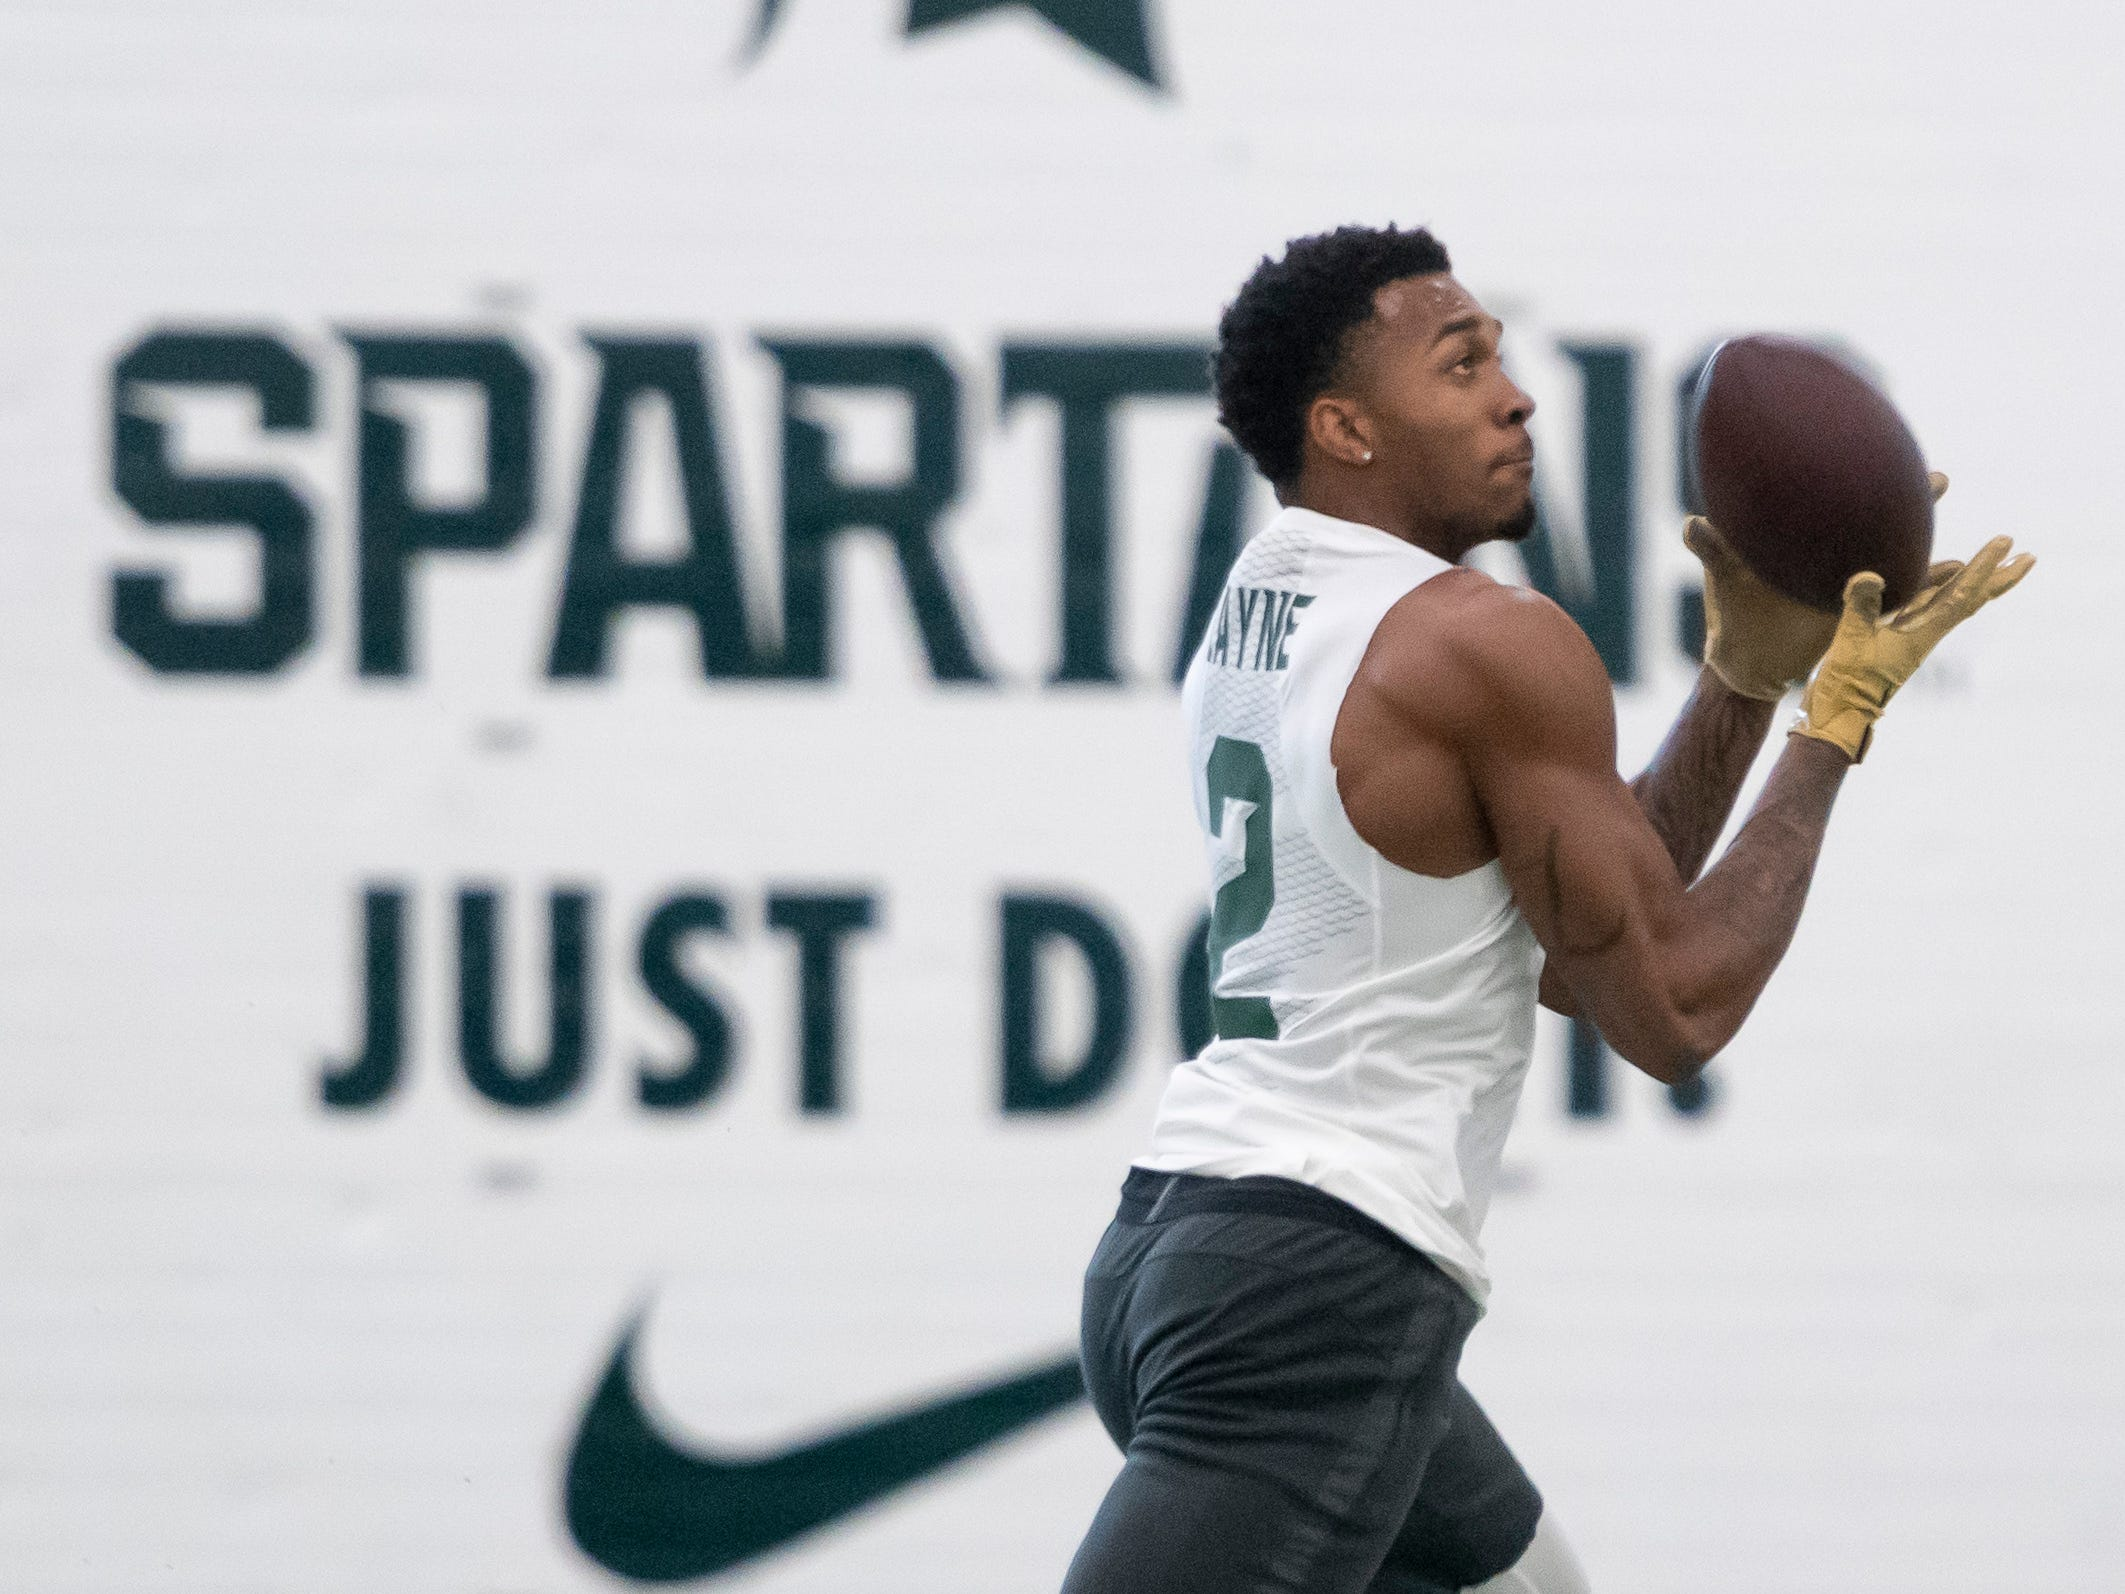 Michigan State cornerback Justin Layne catches a pass during an NFL pro day at the Duffy Daugherty Football facility.